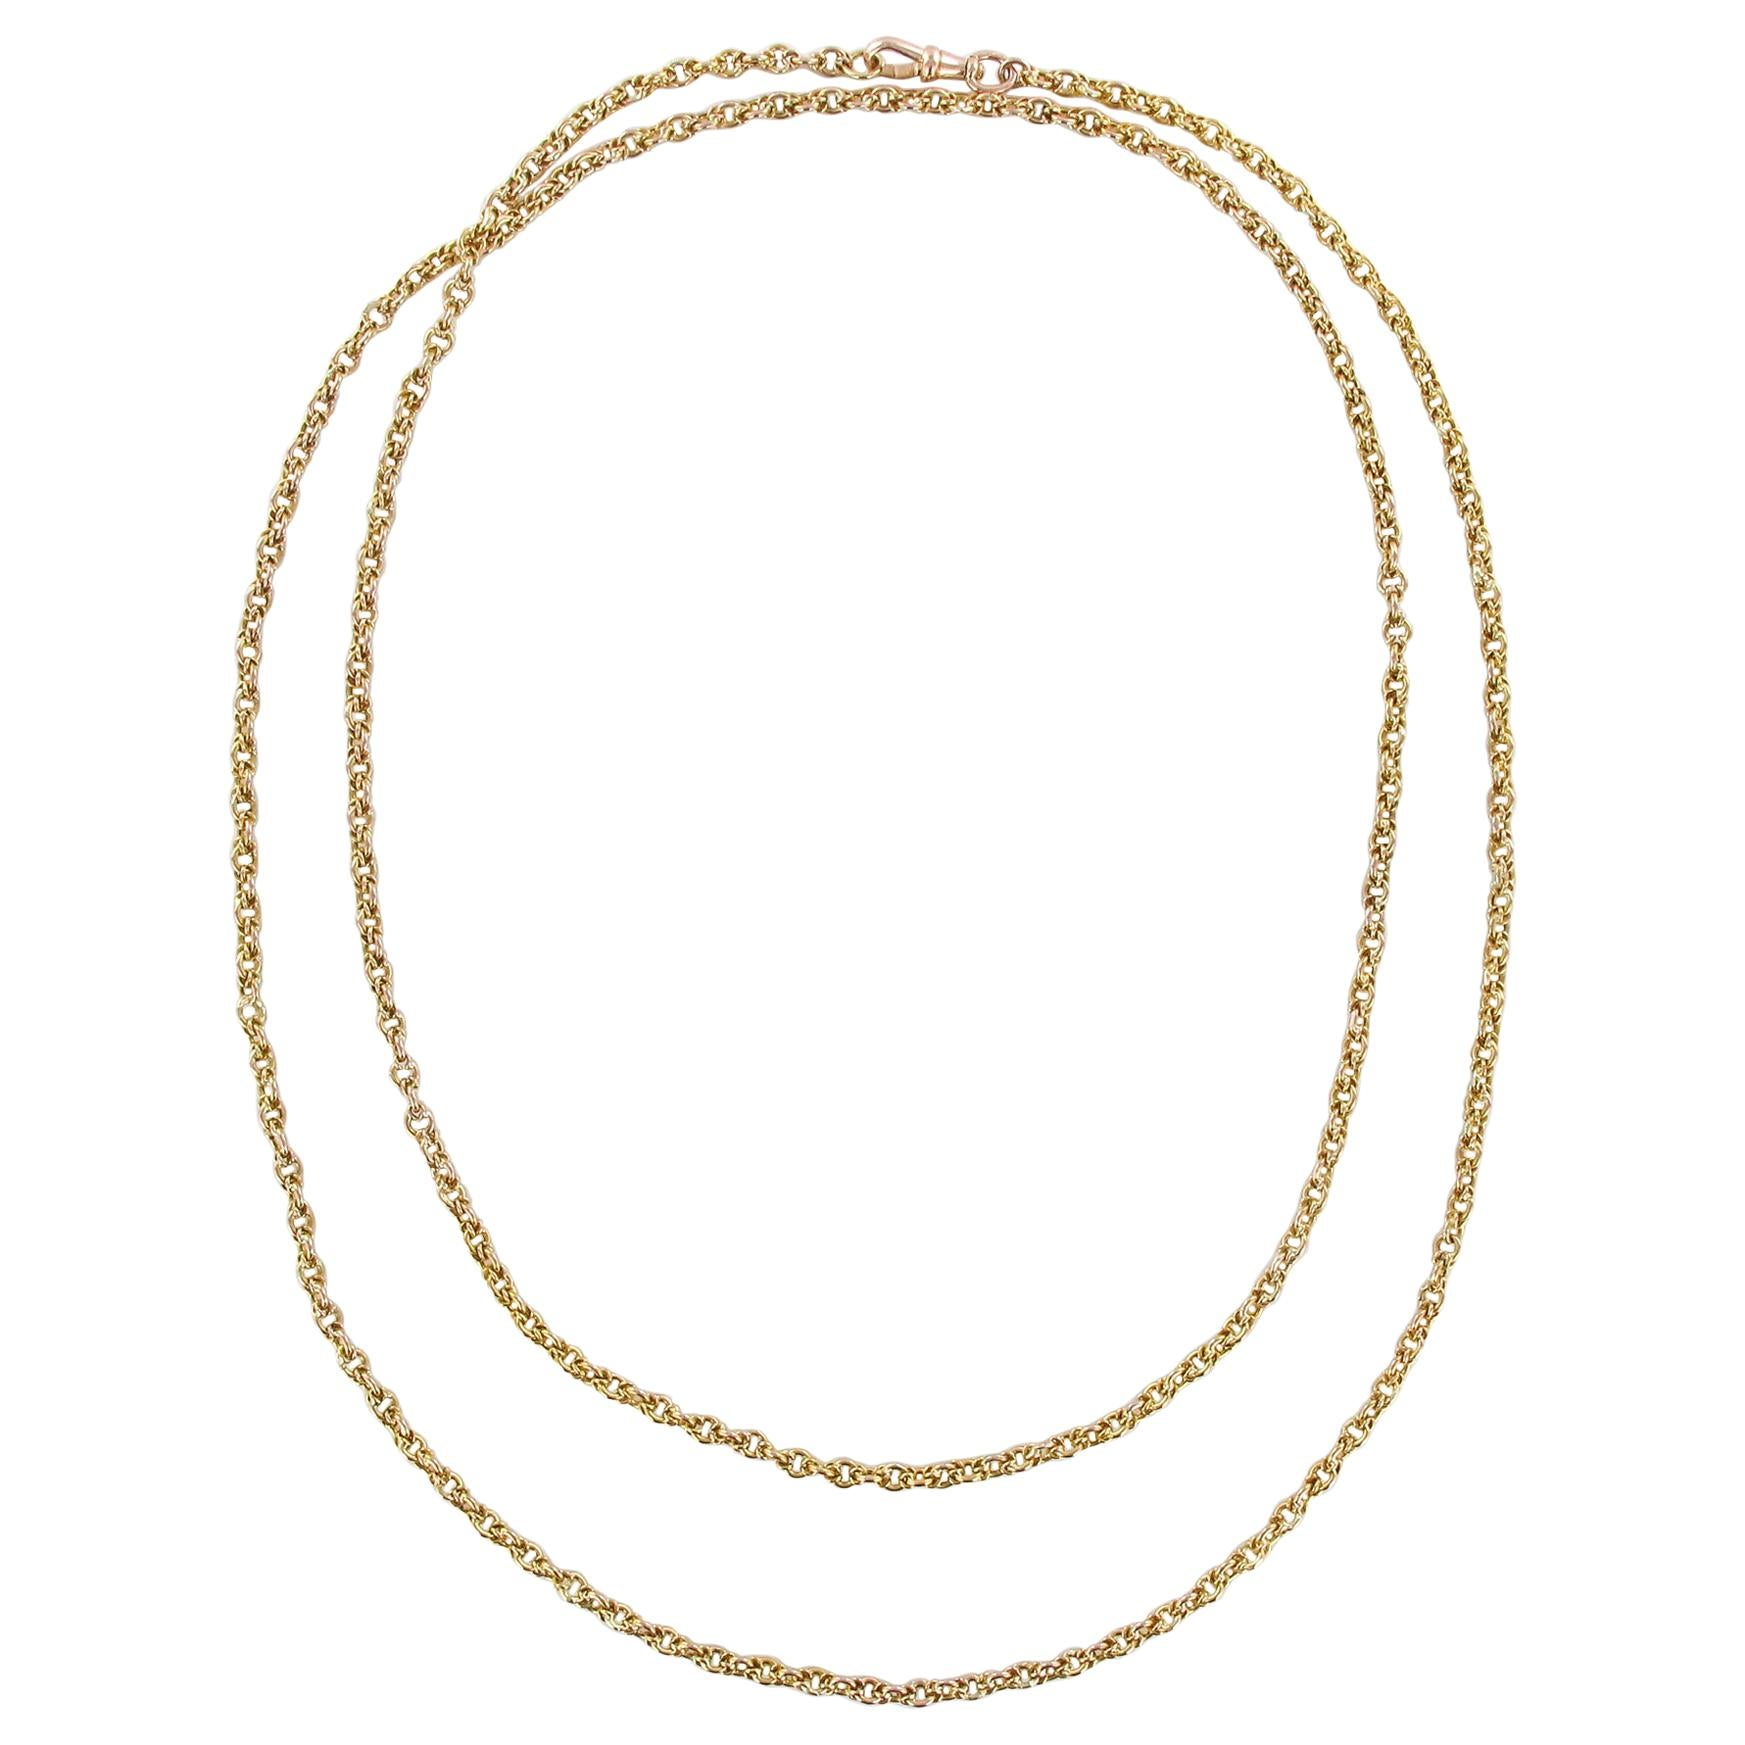 19th Century 18 Karat Yellow Gold Long Chain Necklace